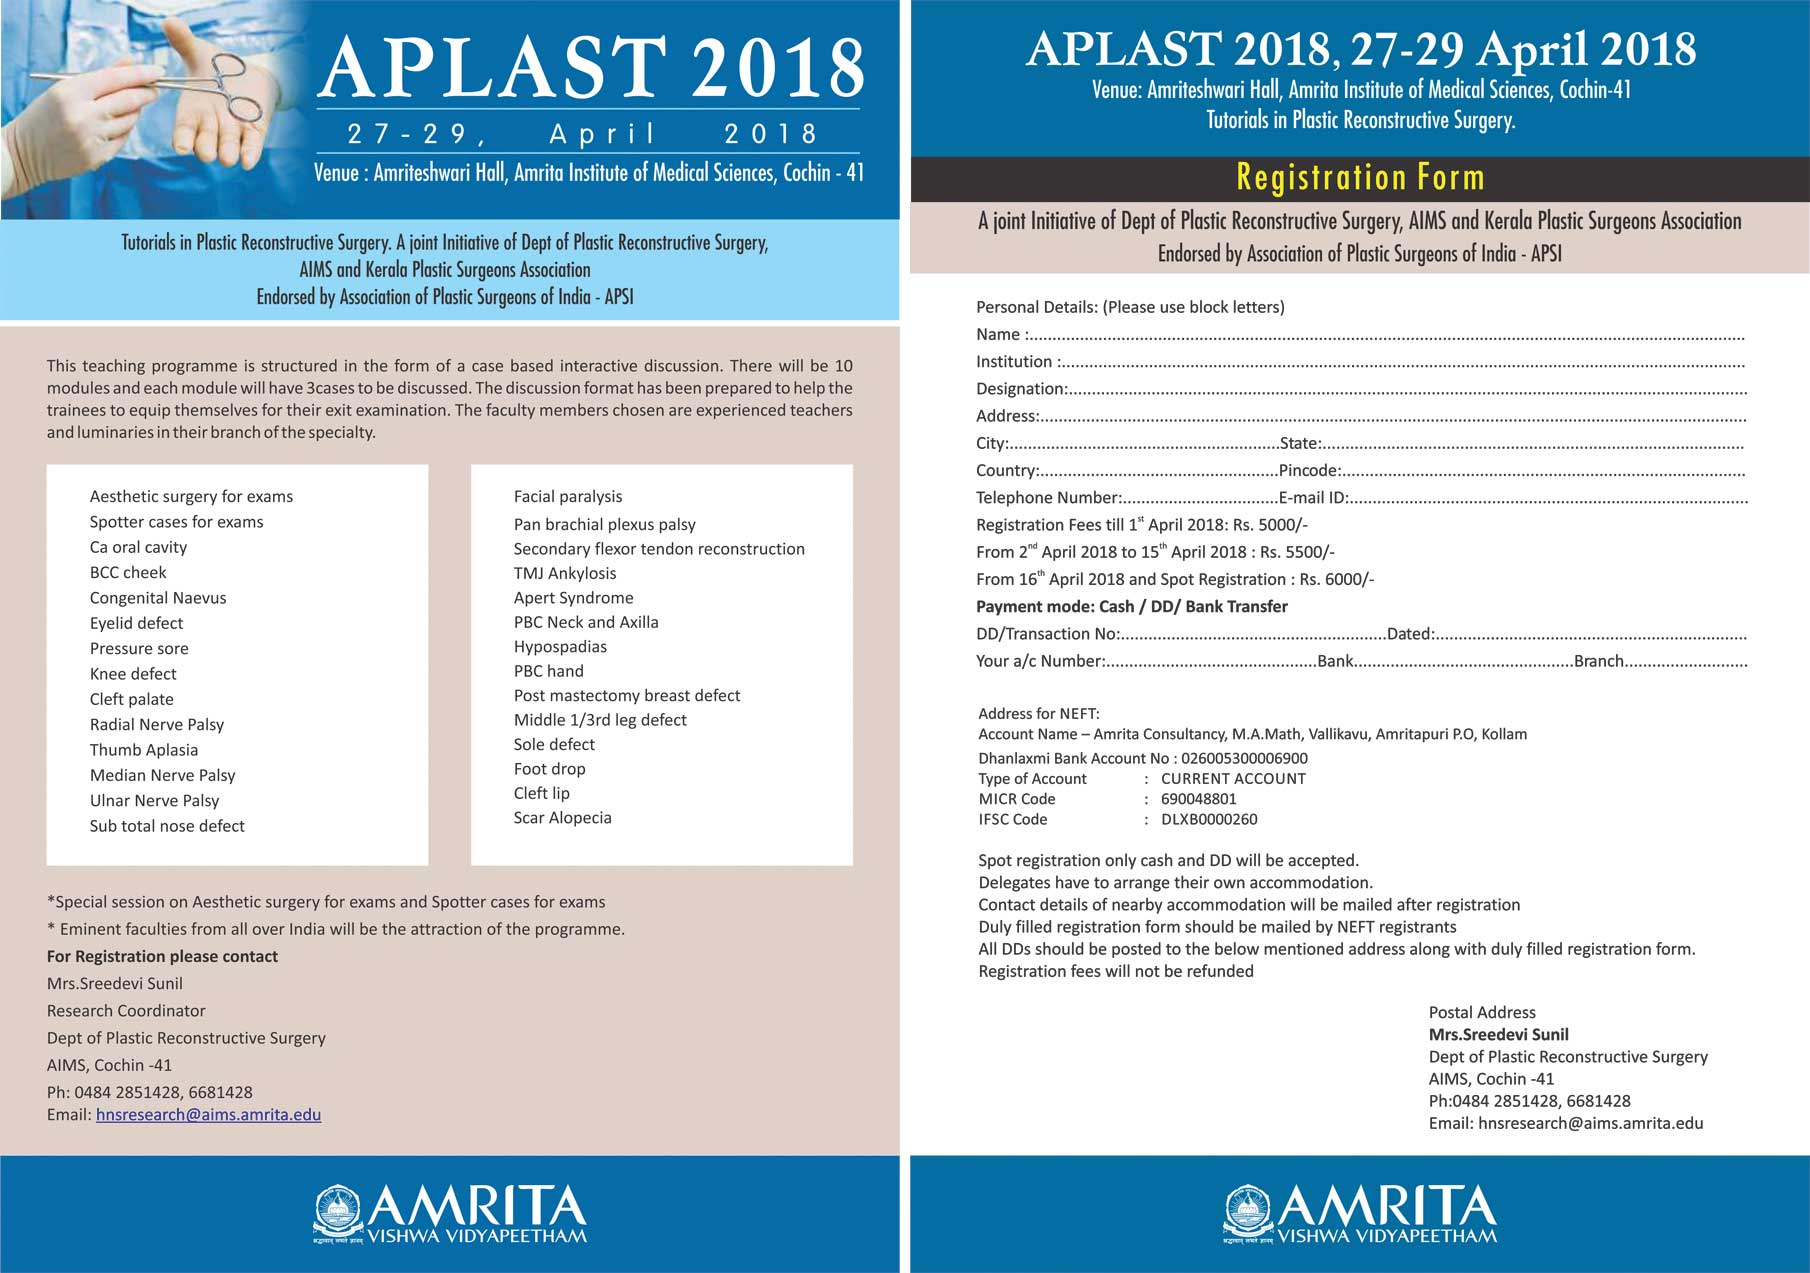 APLAST 2018 (APSI only Full Members will get 15% discount on registration fees of this conference)